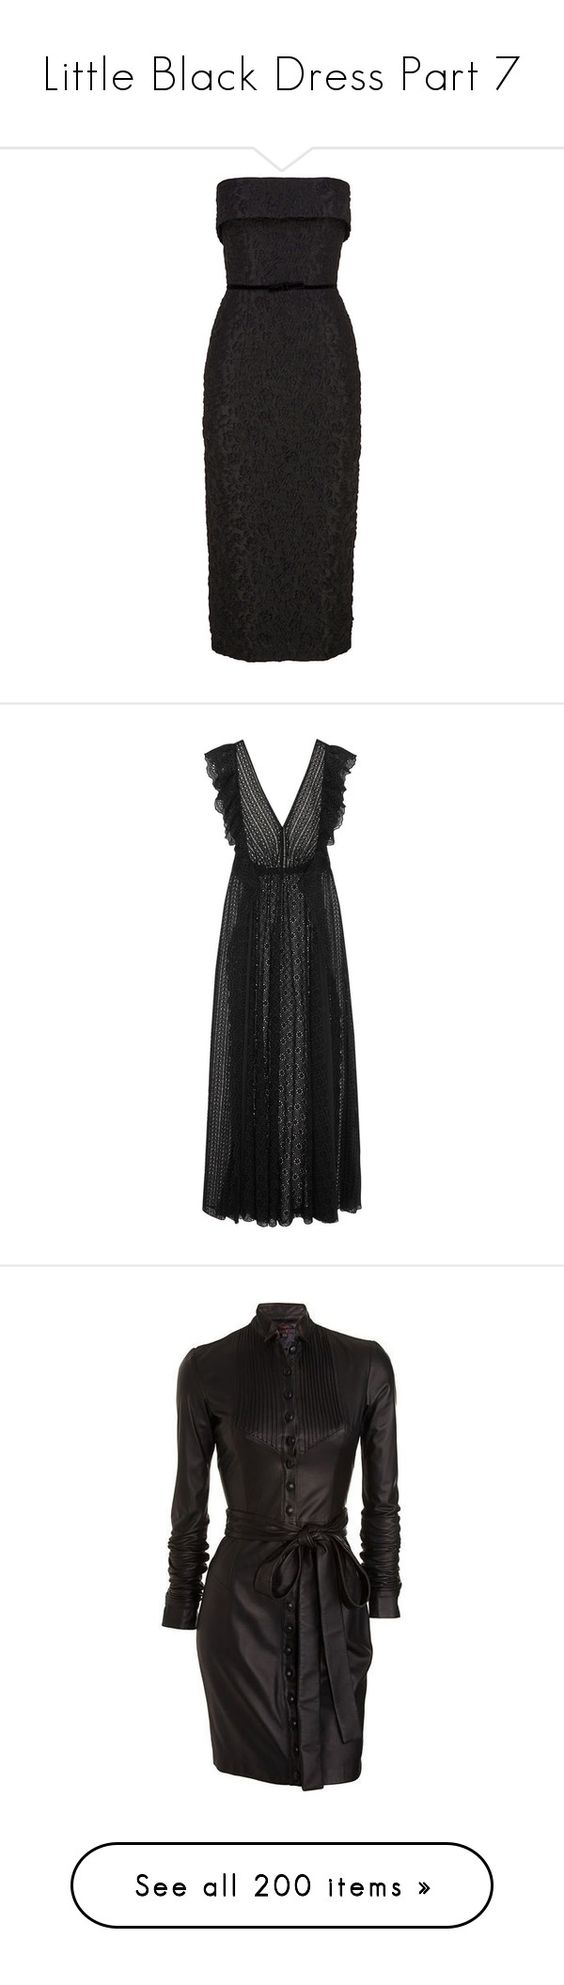 """Little Black Dress Part 7"" by leanne-mcclean ❤ liked on Polyvore featuring dresses, dresses/gowns, black, slim fit dress, strapless dresses, bow dress, flower print dress, strapless floral dress, chiffon dresses and maxi dresses"